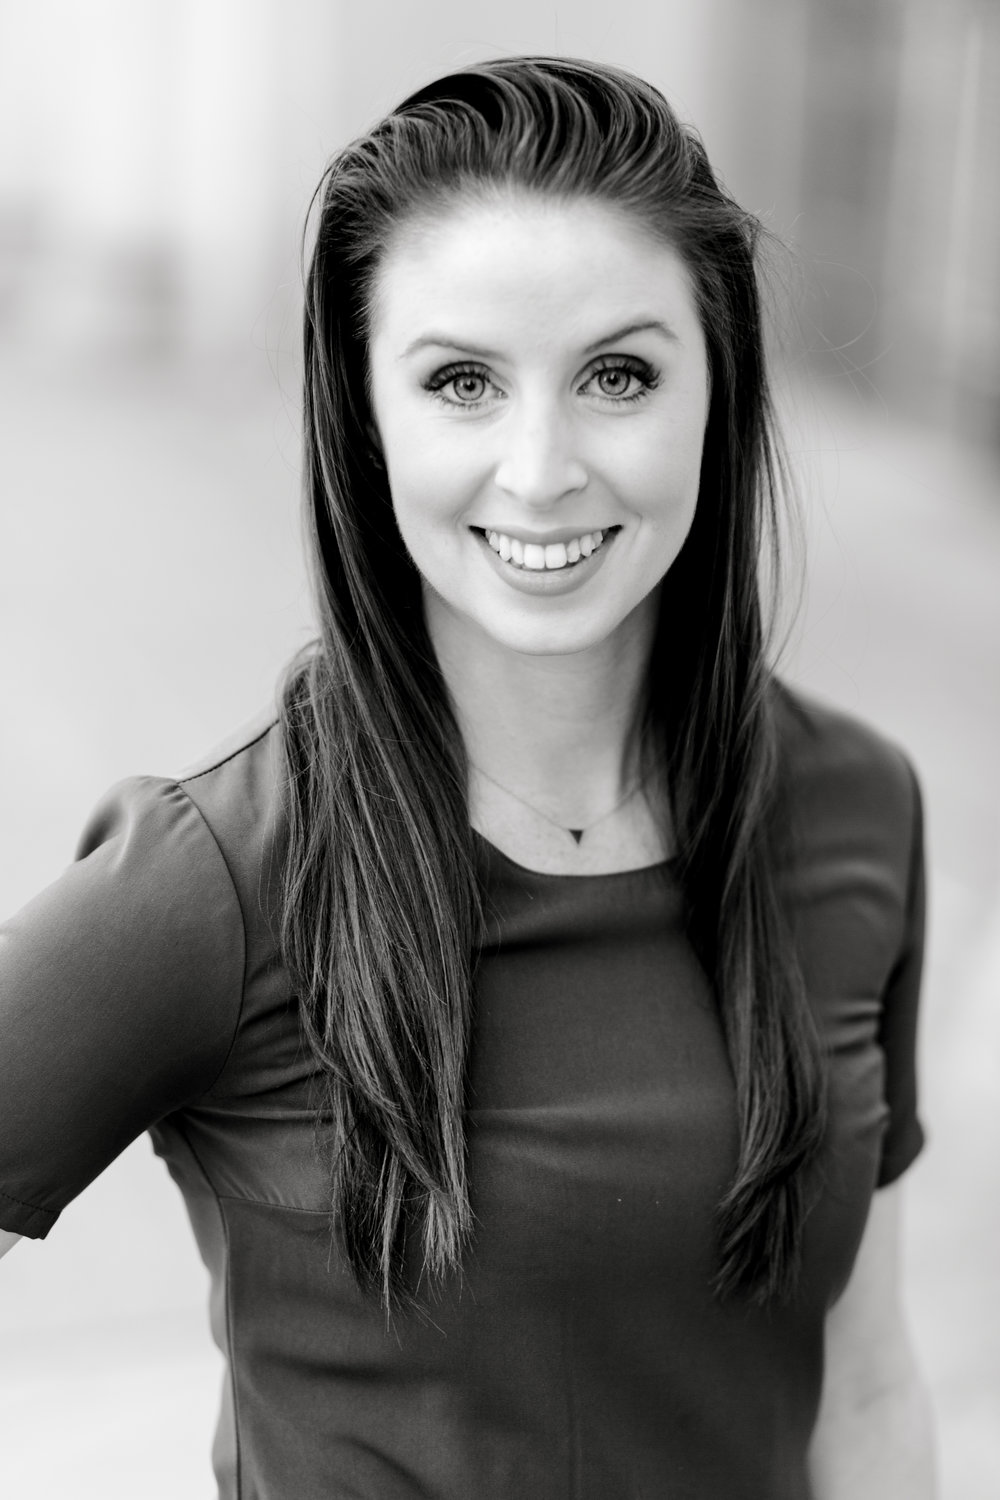 Erin Wood, creator of heyhomease.com and trusted Real Estate Agent.